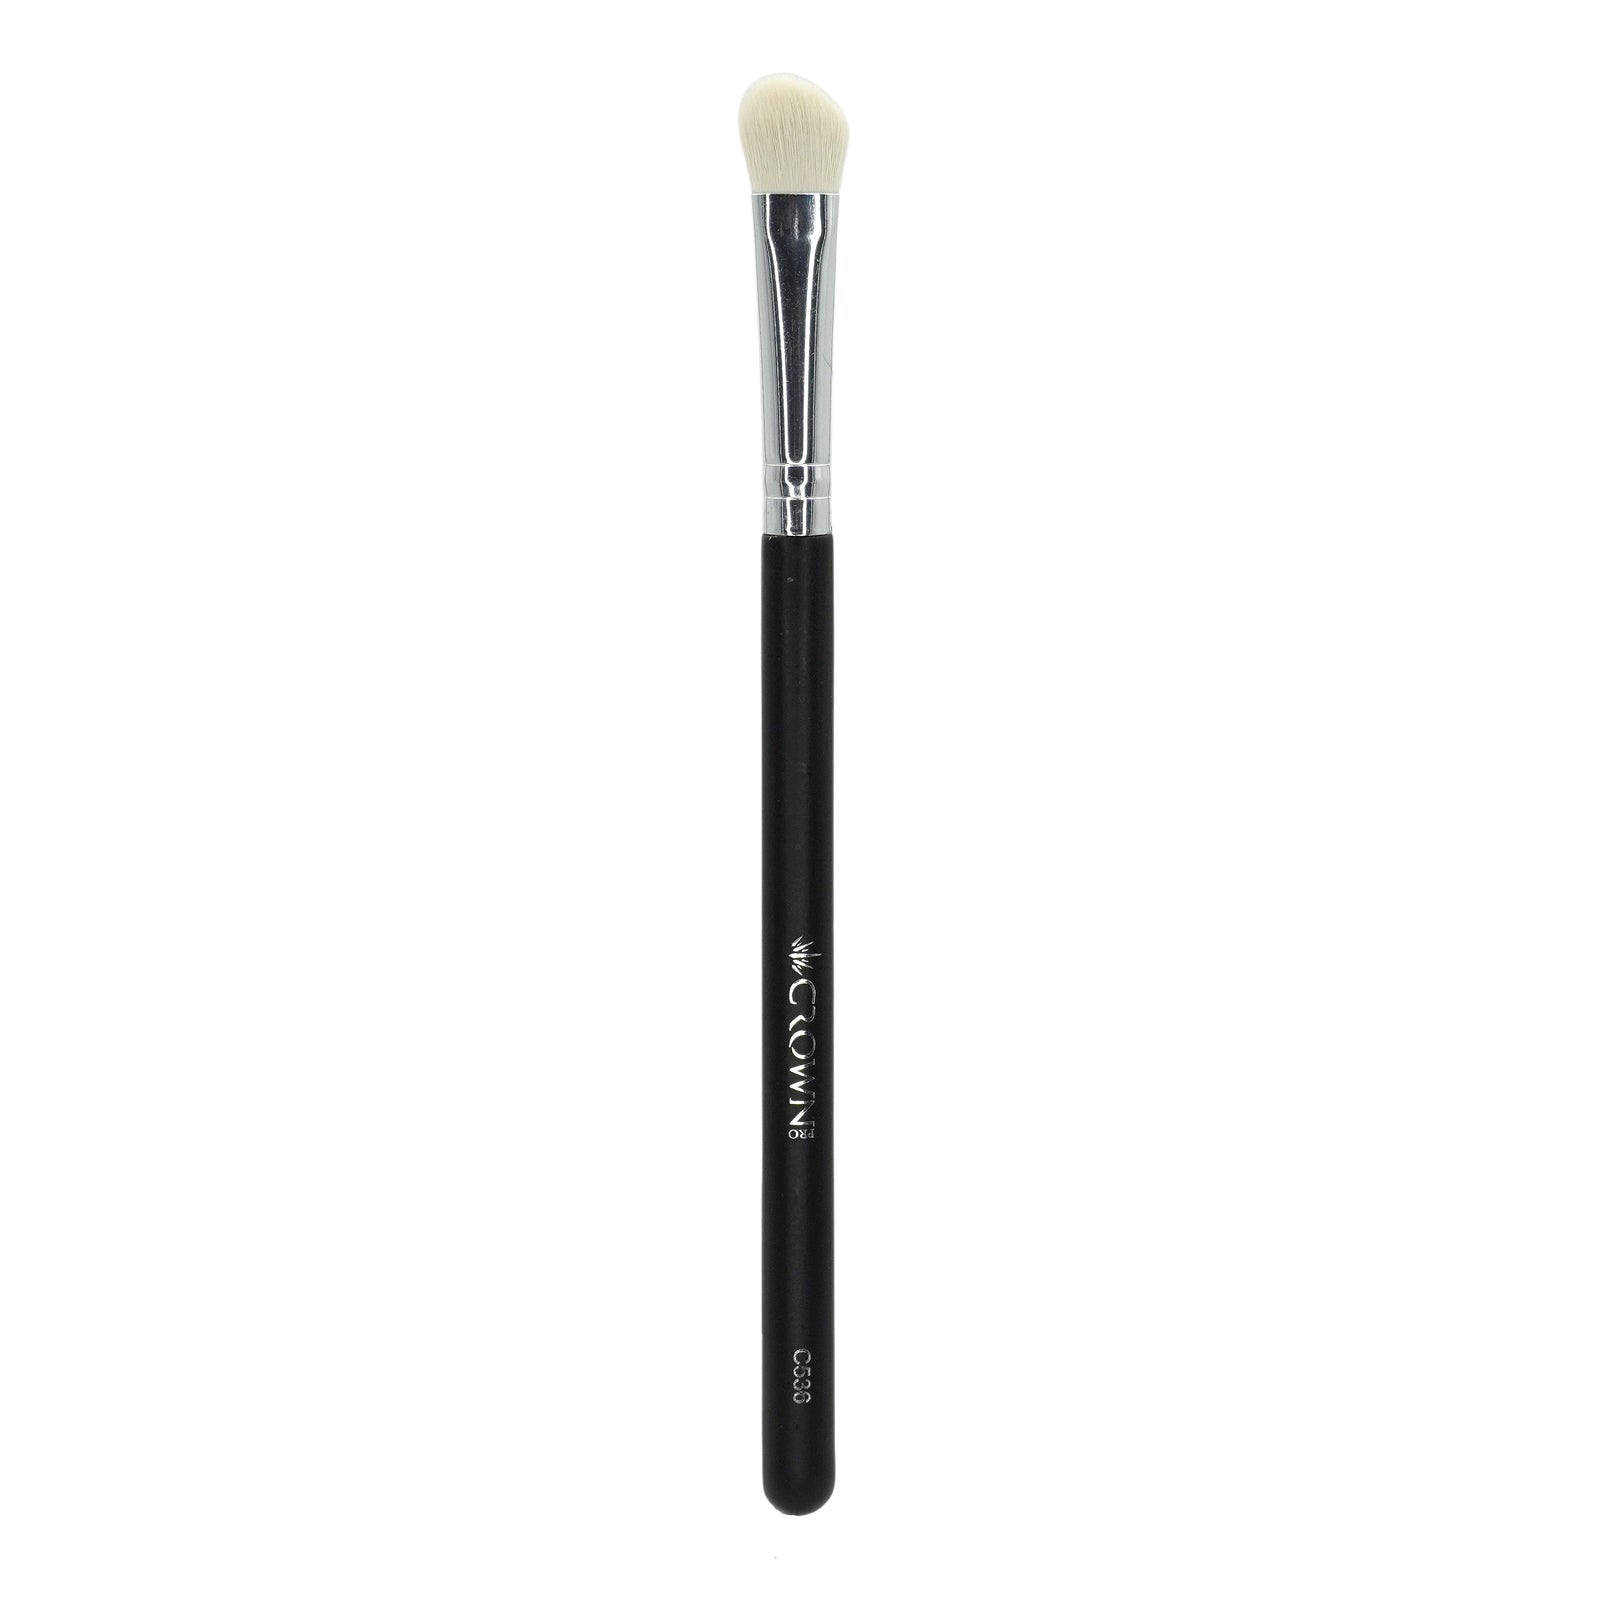 Crownbrush C536 Tapered Base Eyeshadow Brush